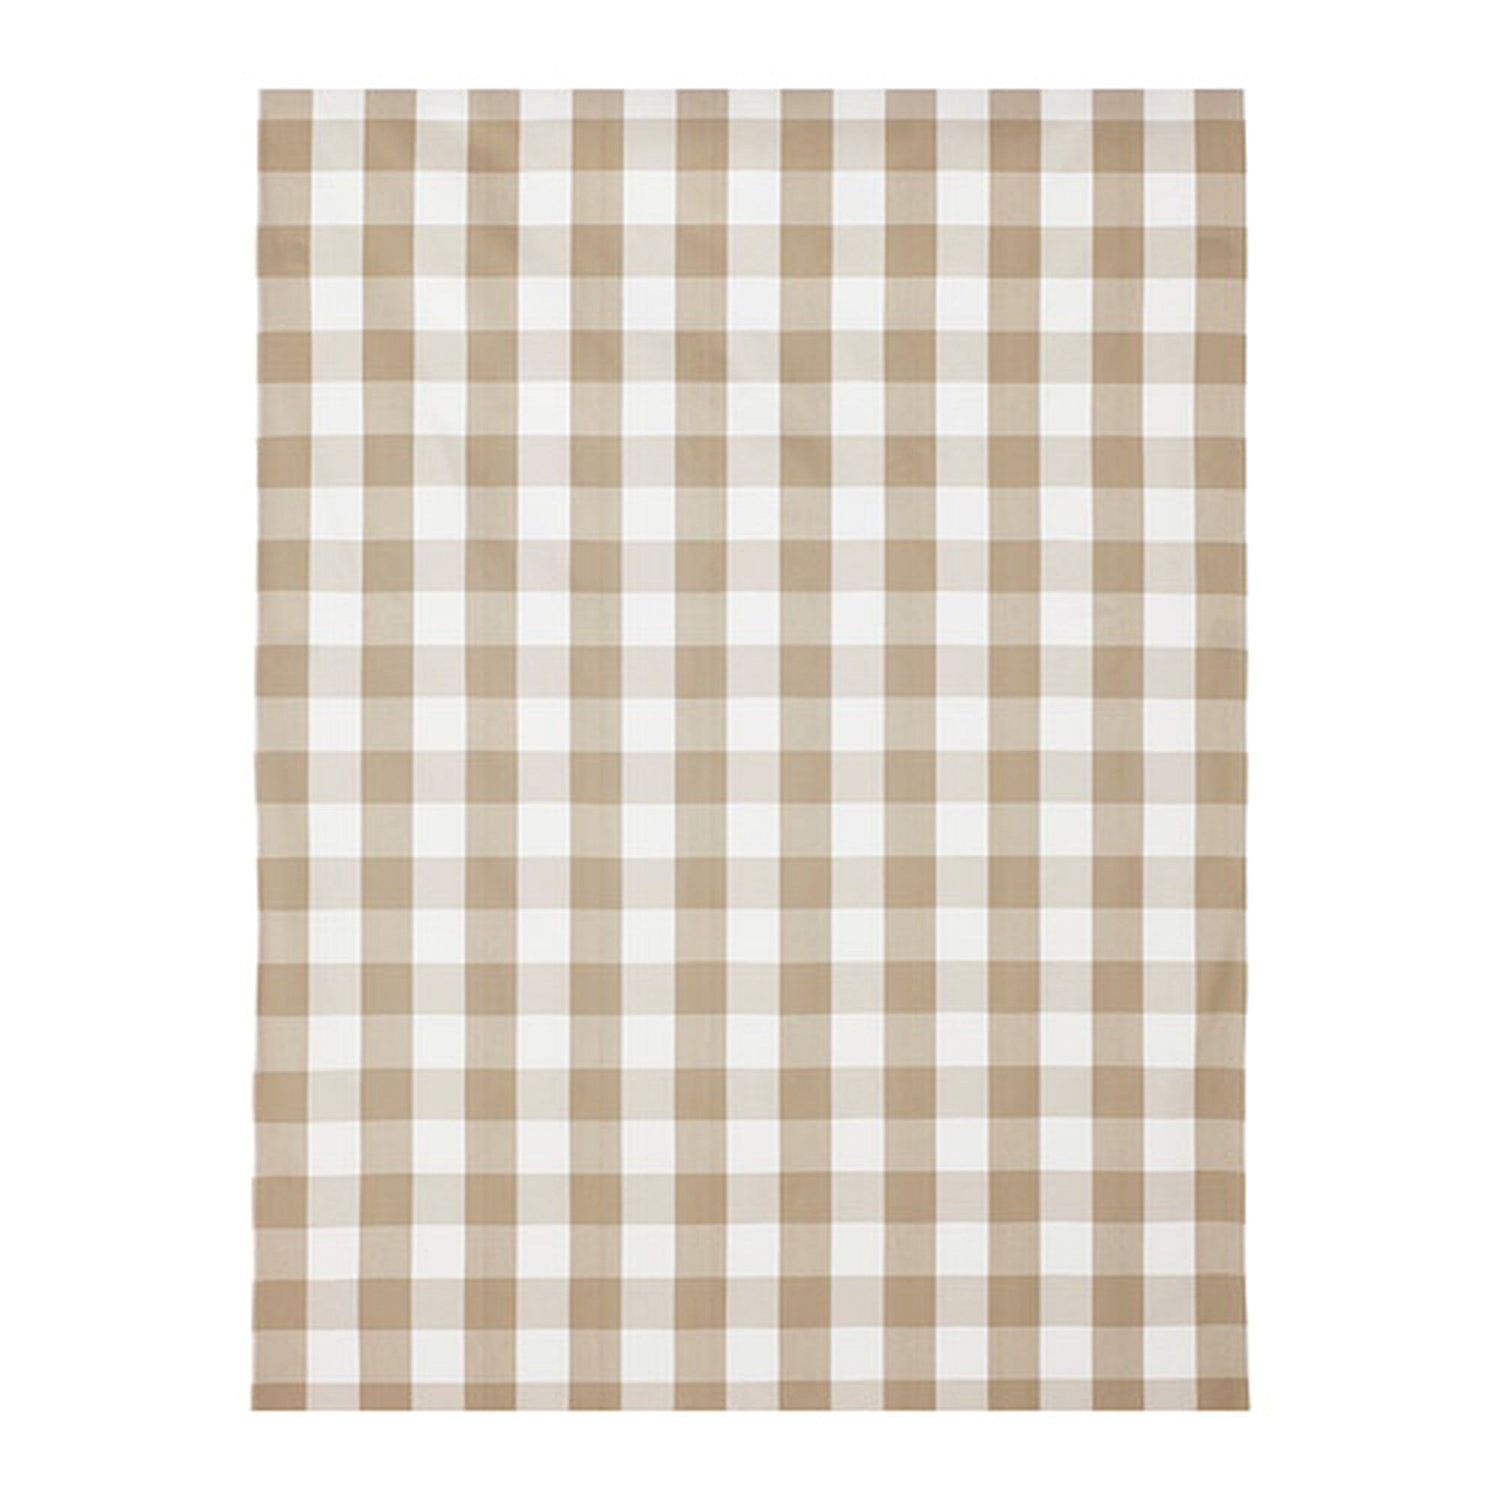 Buffalo Check Curtains Ikea Ikea Berta Ruta Fabric Material Buffalo Check Beige White